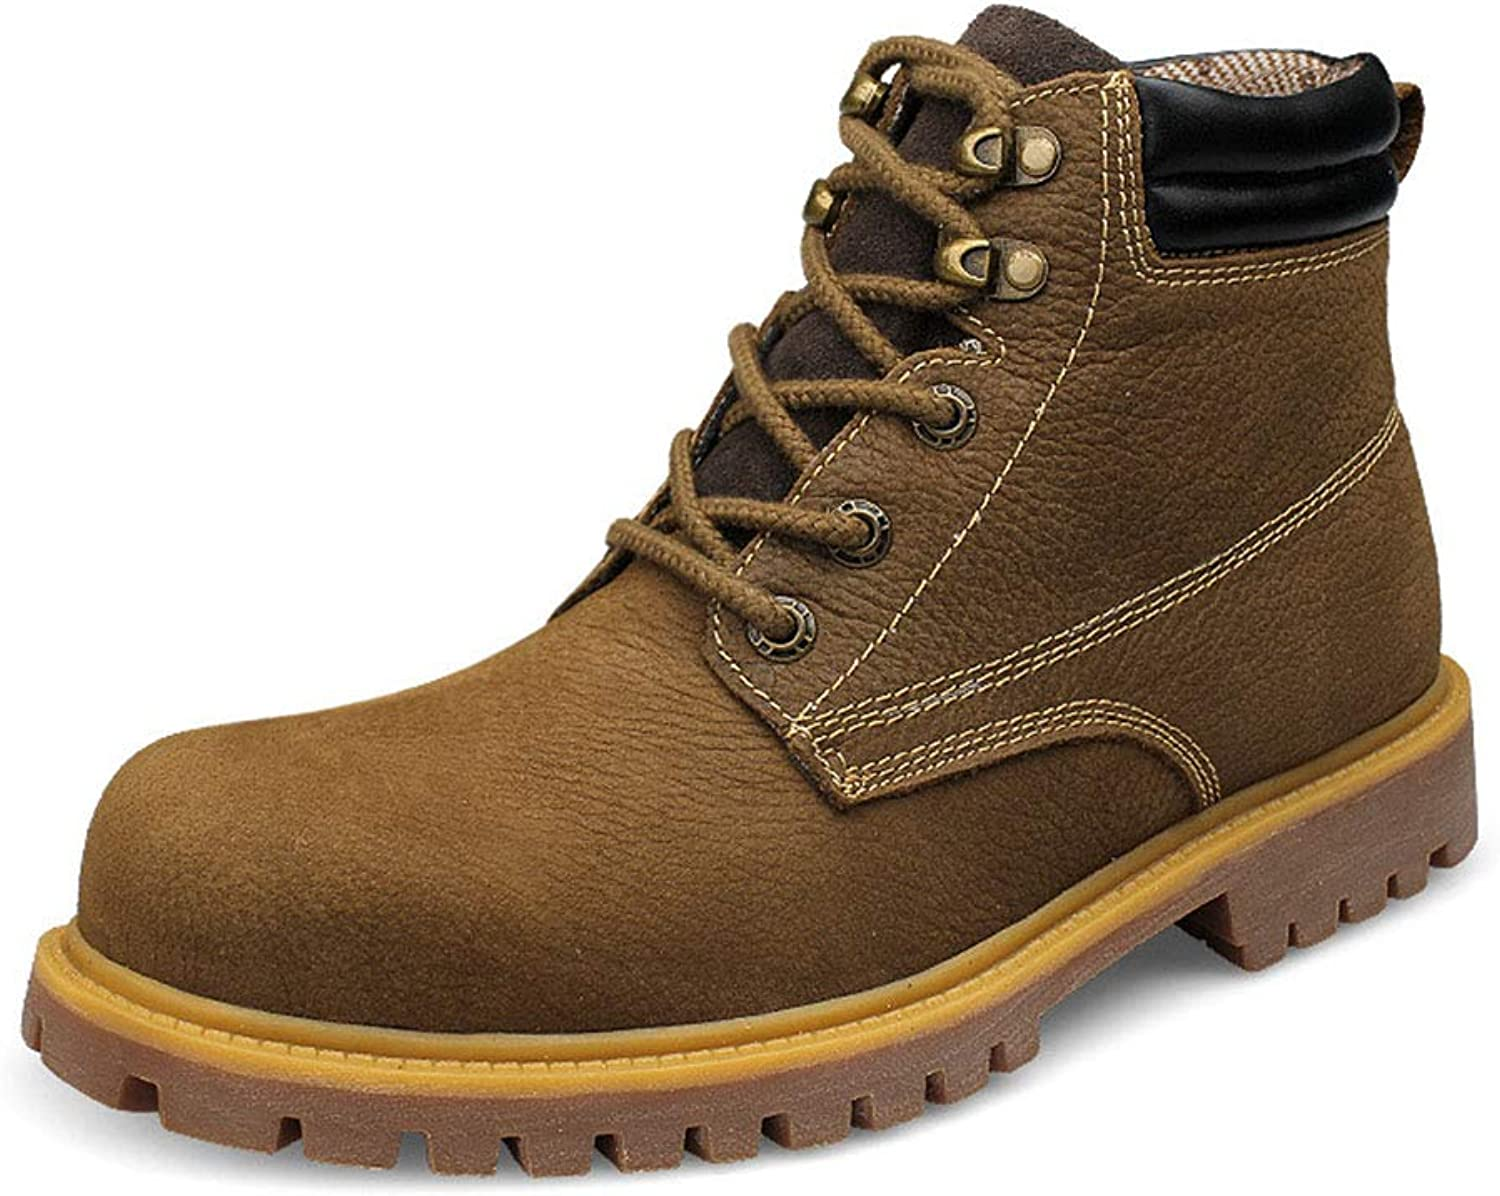 Men's Boots, Outdoor High-Top Tooling Martin Boots Winter New Lace-Up Casual Non Slip Boots Booties,B,45